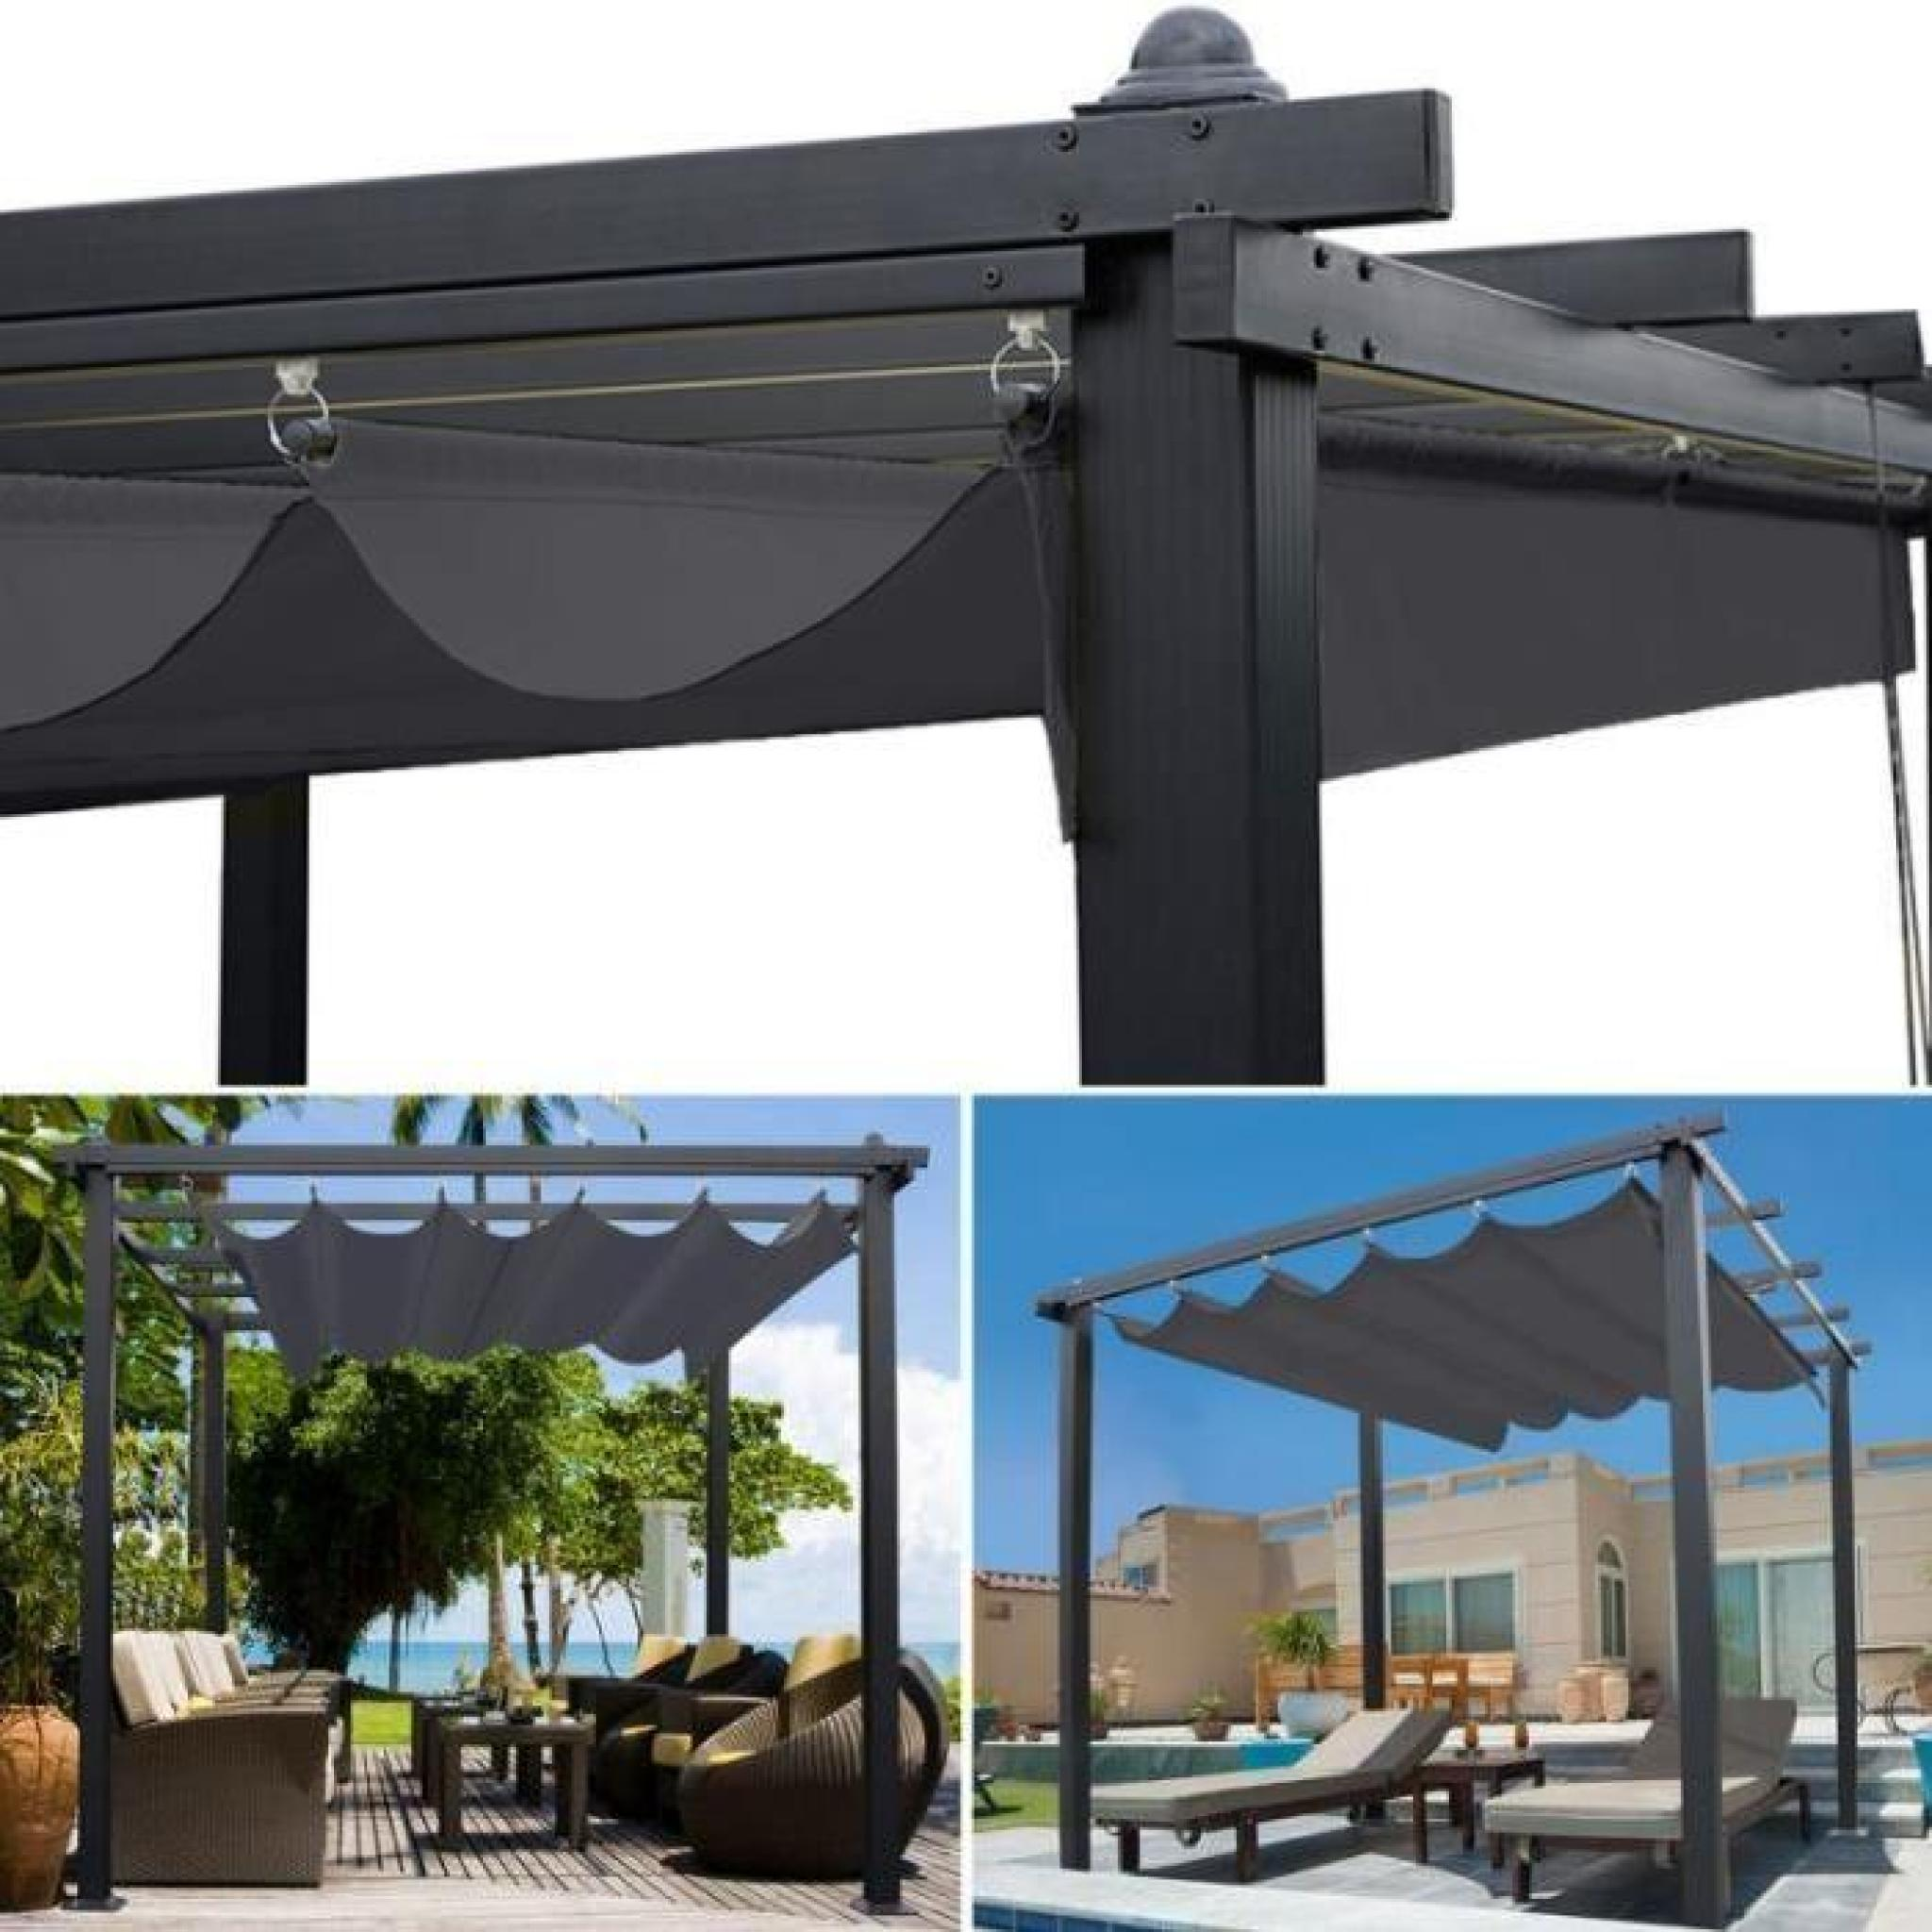 pergola toit r tractable gris tonnelle 4 pieds 3x3m achat vente pergola en aluminium pas cher. Black Bedroom Furniture Sets. Home Design Ideas